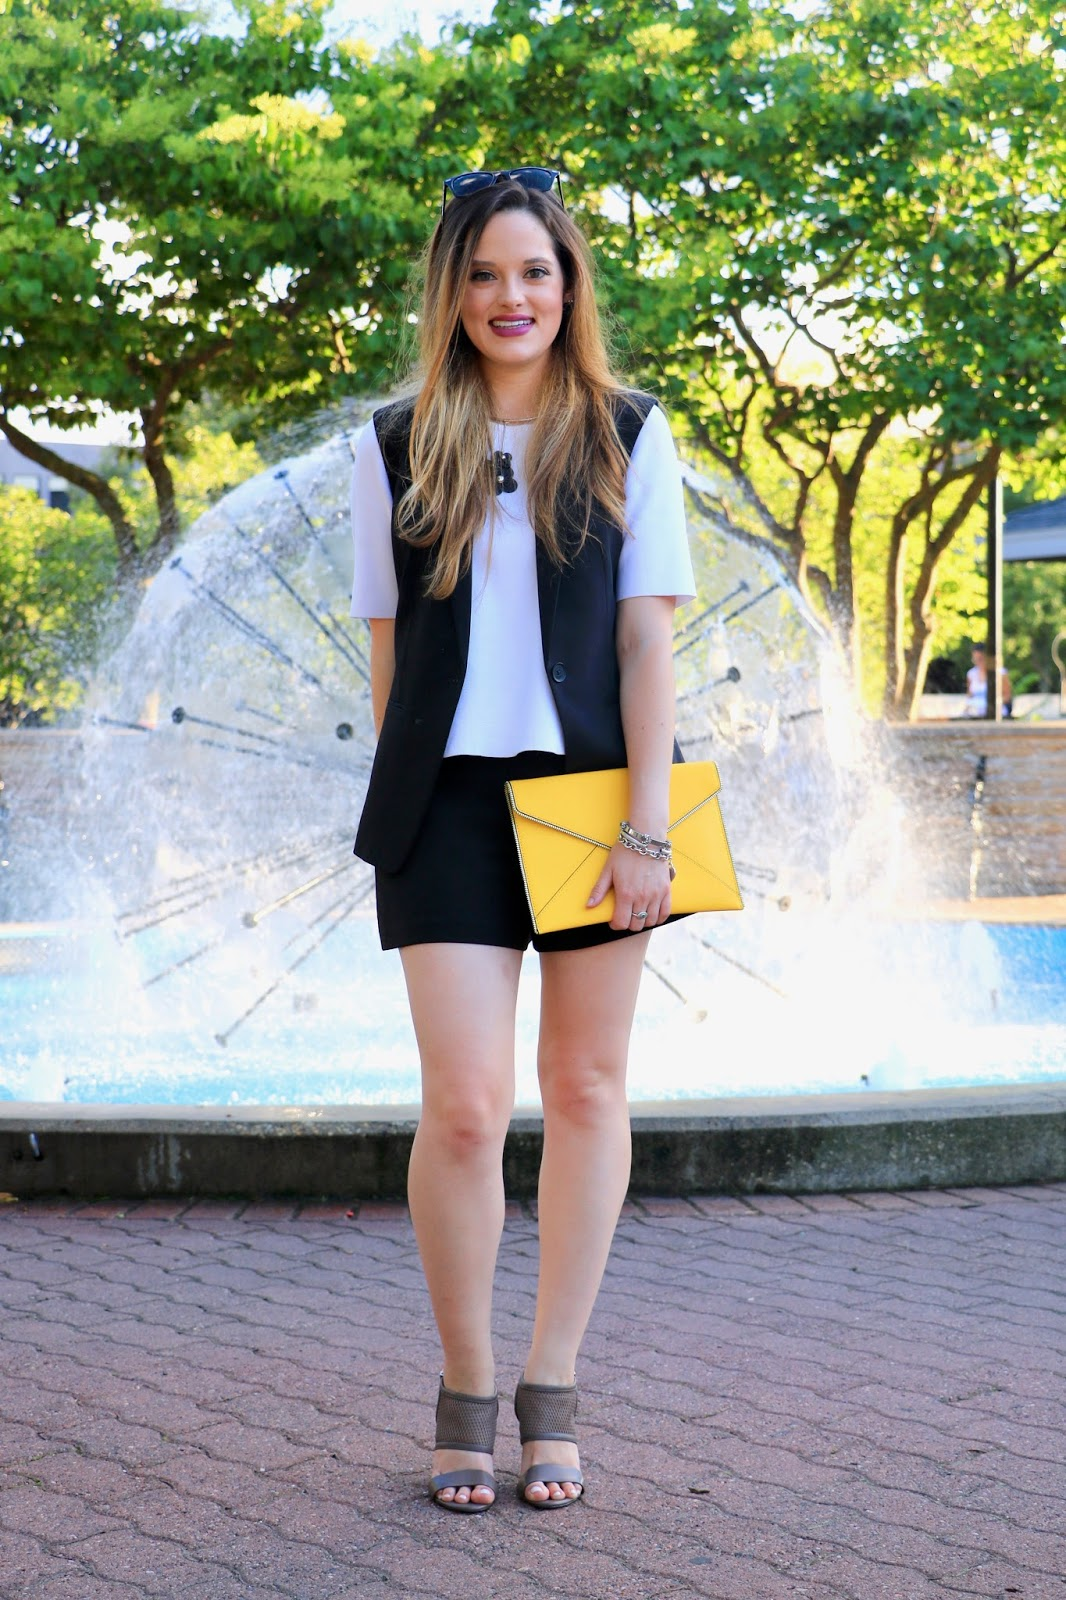 NYC fashion blogger Kathleen Harper of Kat's Fashion Fix wearing shorts